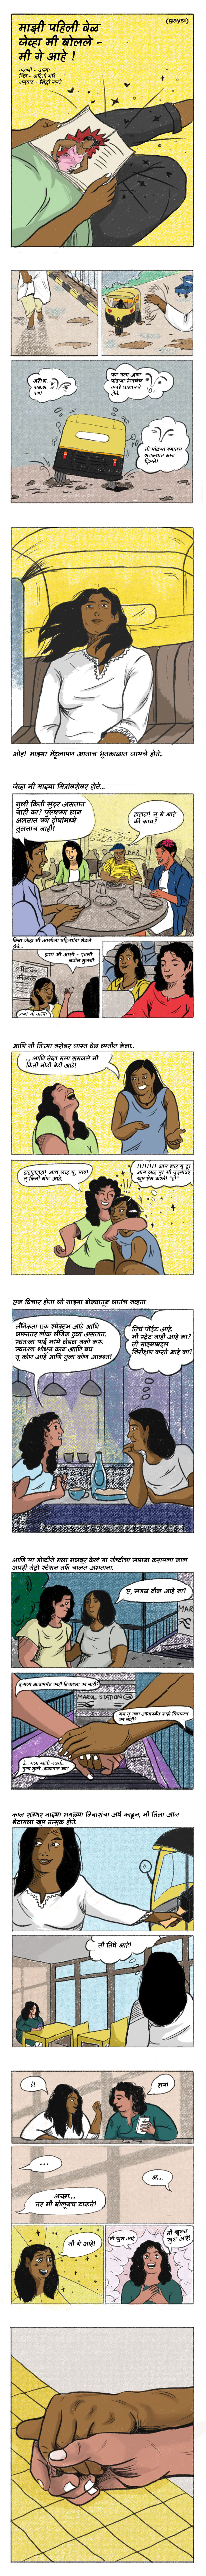 Graphic Story: My First Time Saying It Out Loud – I Am Gay! [In Marathi]